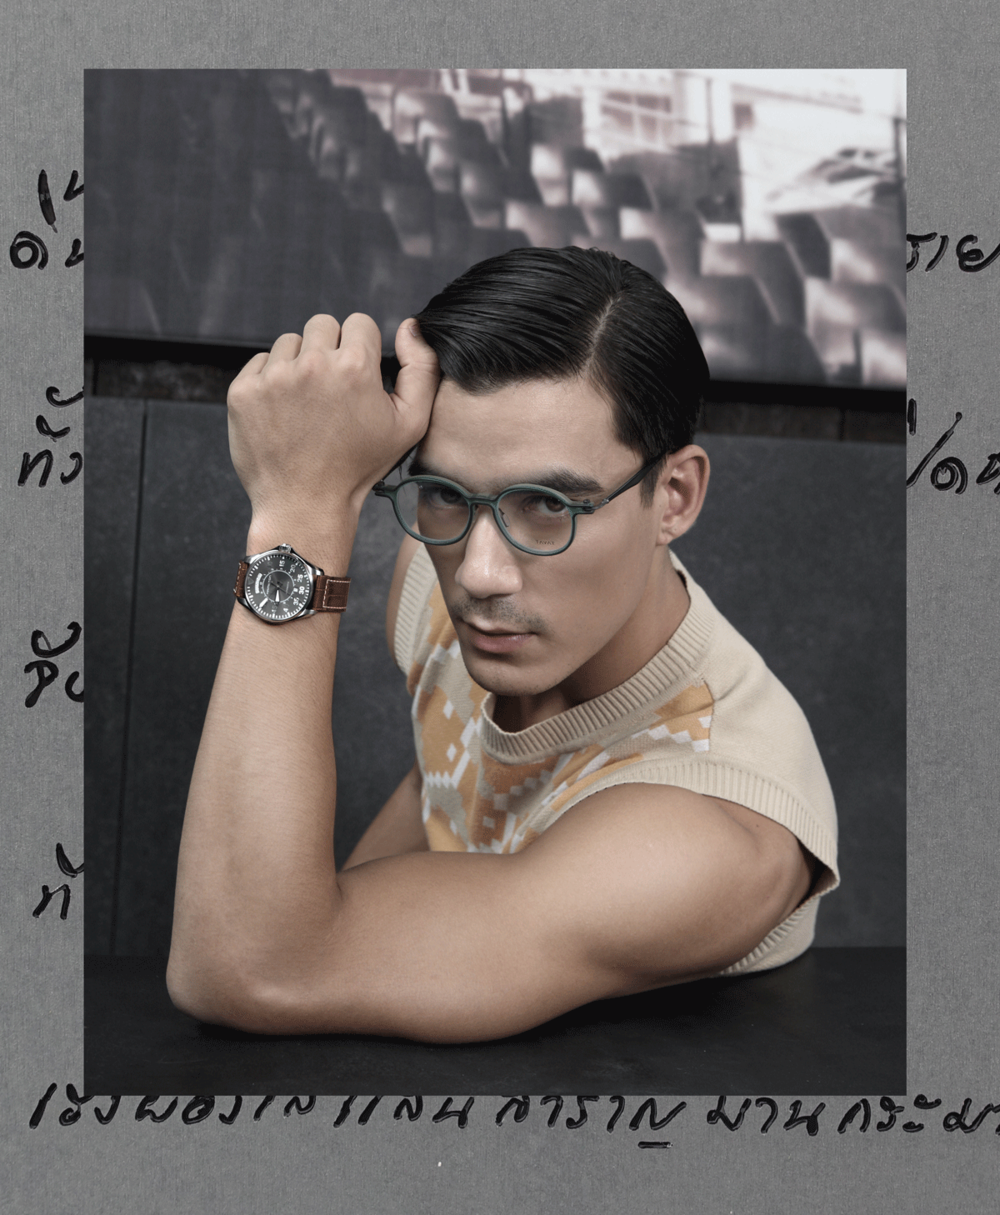 clothes : Everyday Karmakamet / watch : Hamilton Lhaki Pilot Day Date / eyeglasses : TAVAT